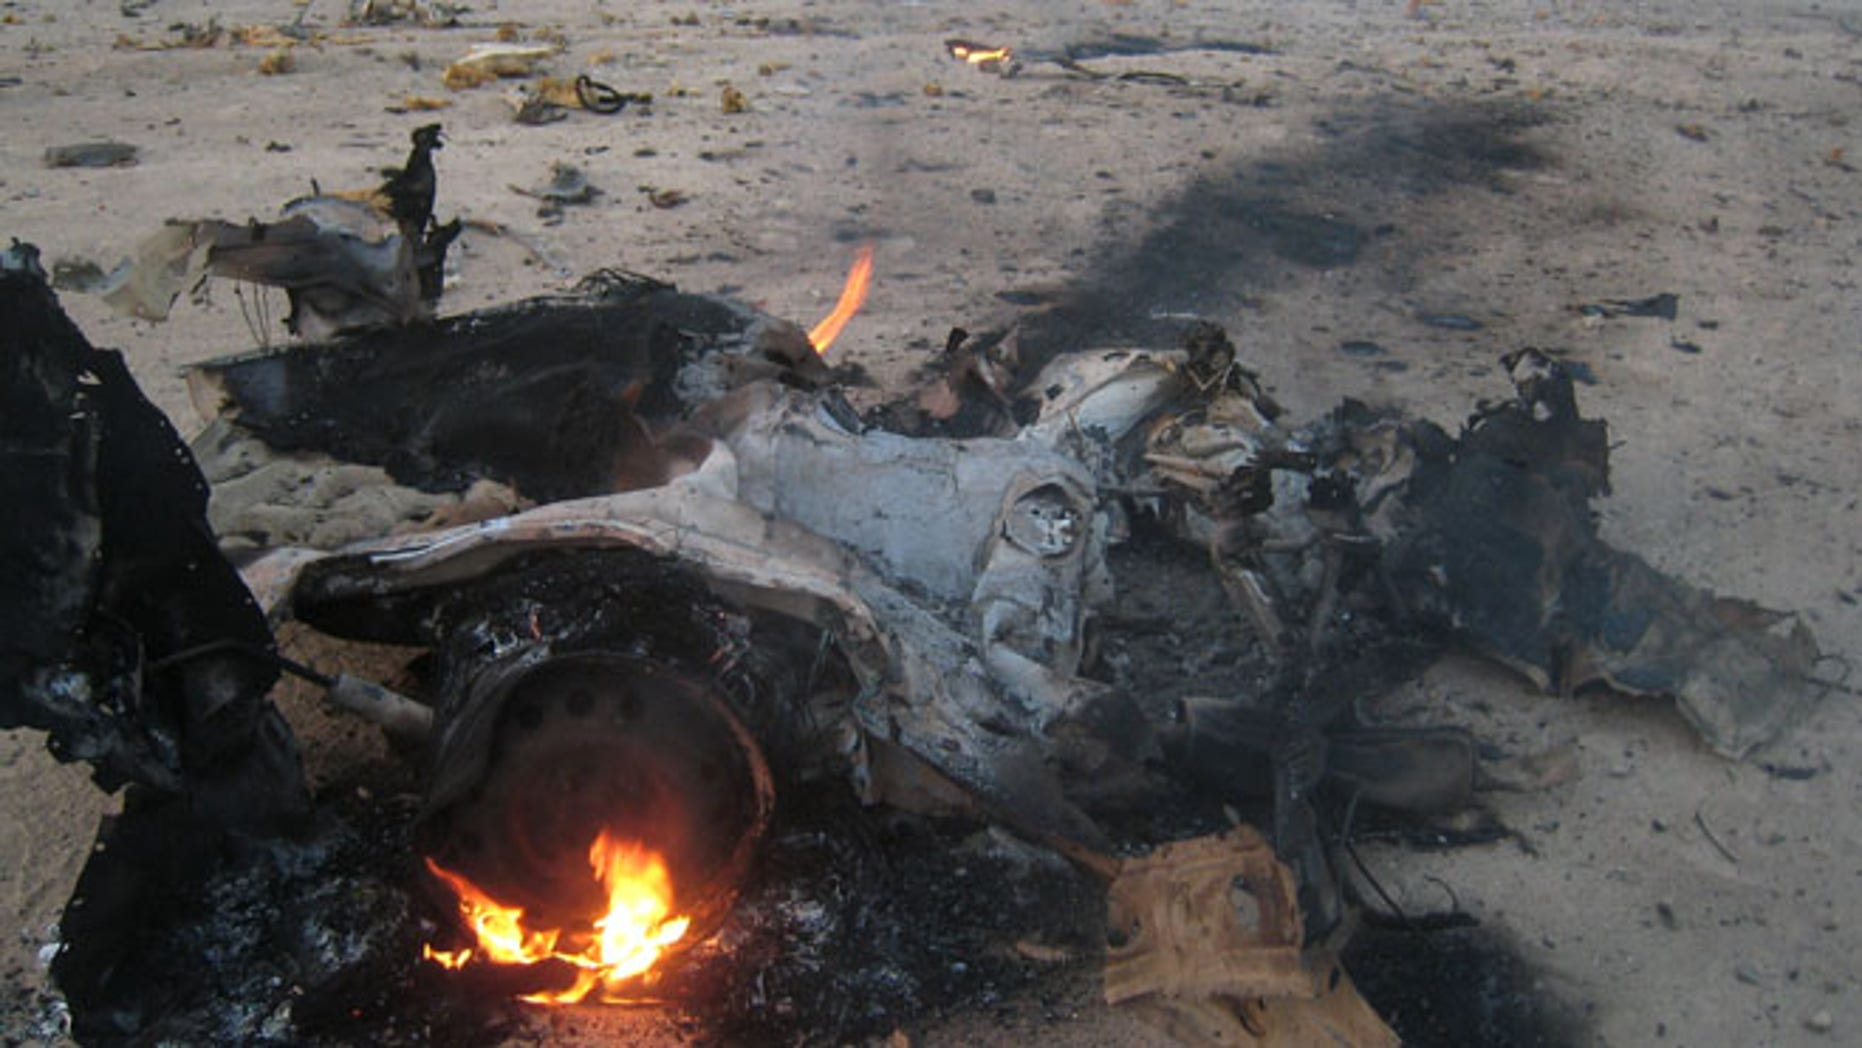 Security forces and civilians inspect the scene of a car bomb attack north of Baghdad, Iraq, Friday July 26, 2013. Attacks on civilians and government forces have escalated across Iraq recently. More than 3,000 people have been killed since April.